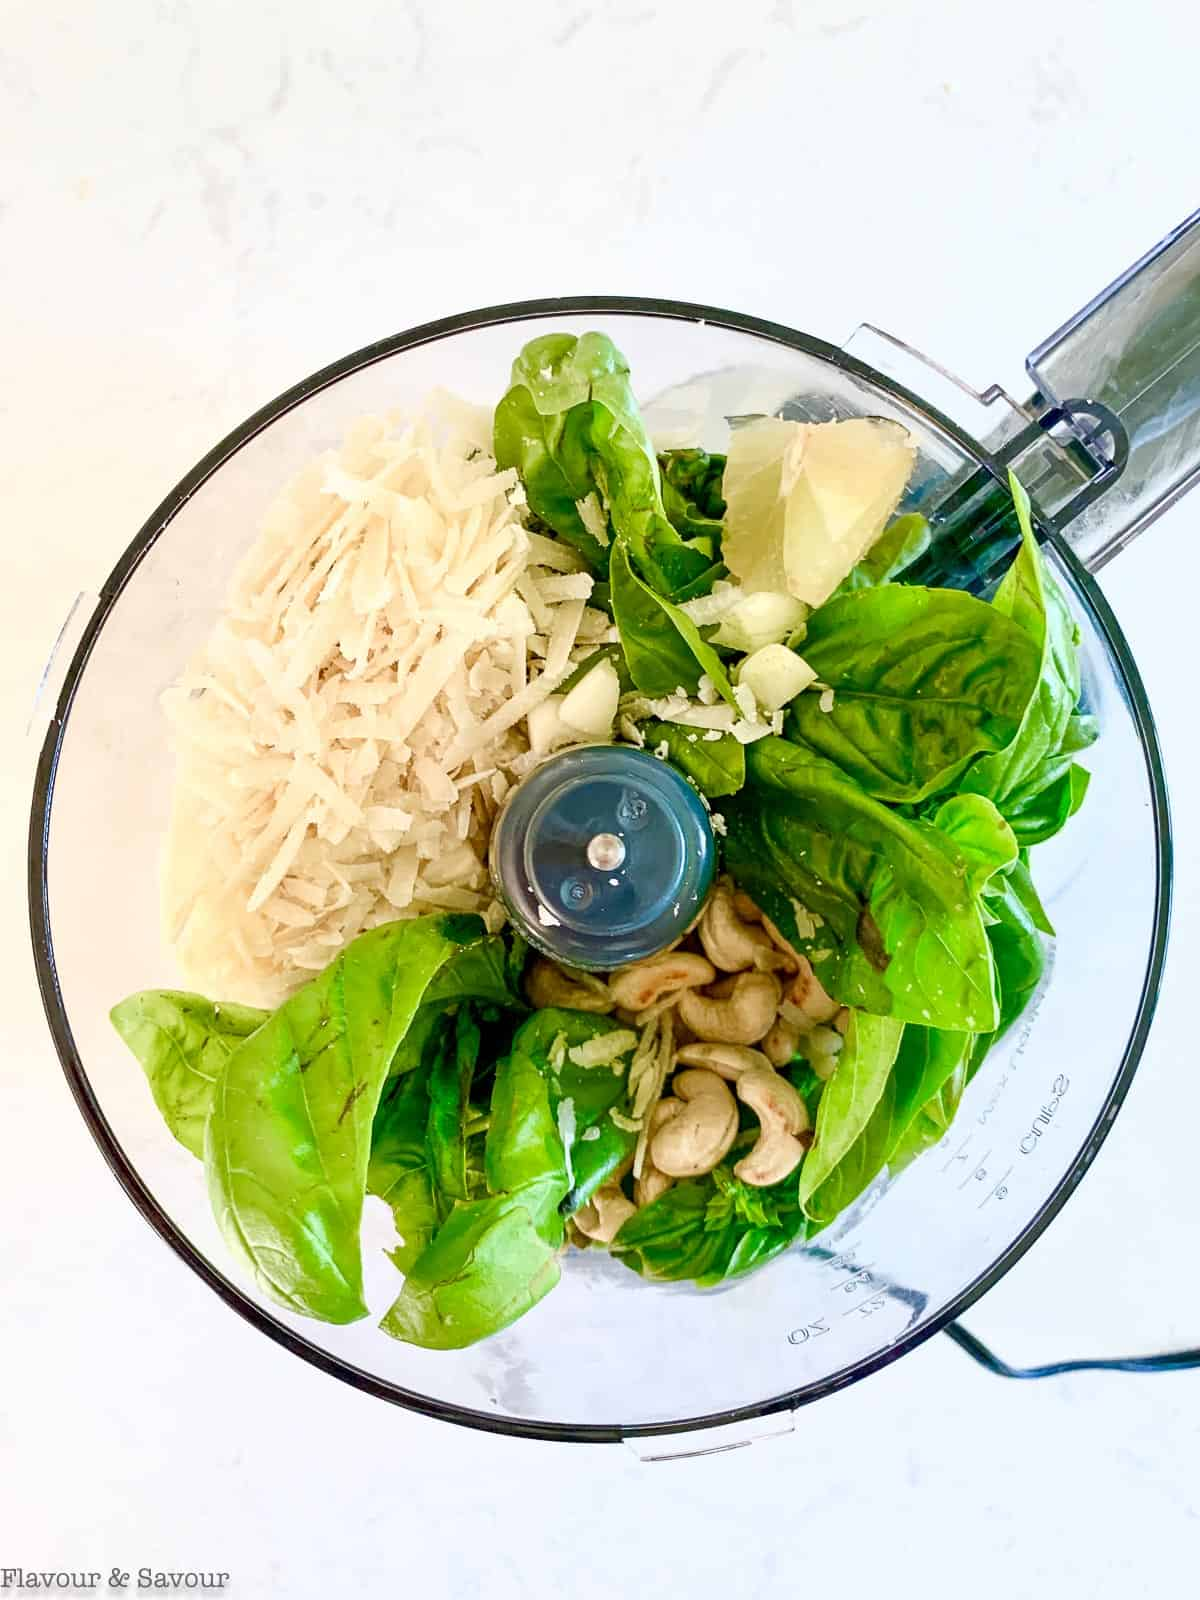 Basil pesto ingredients in food processor bowl